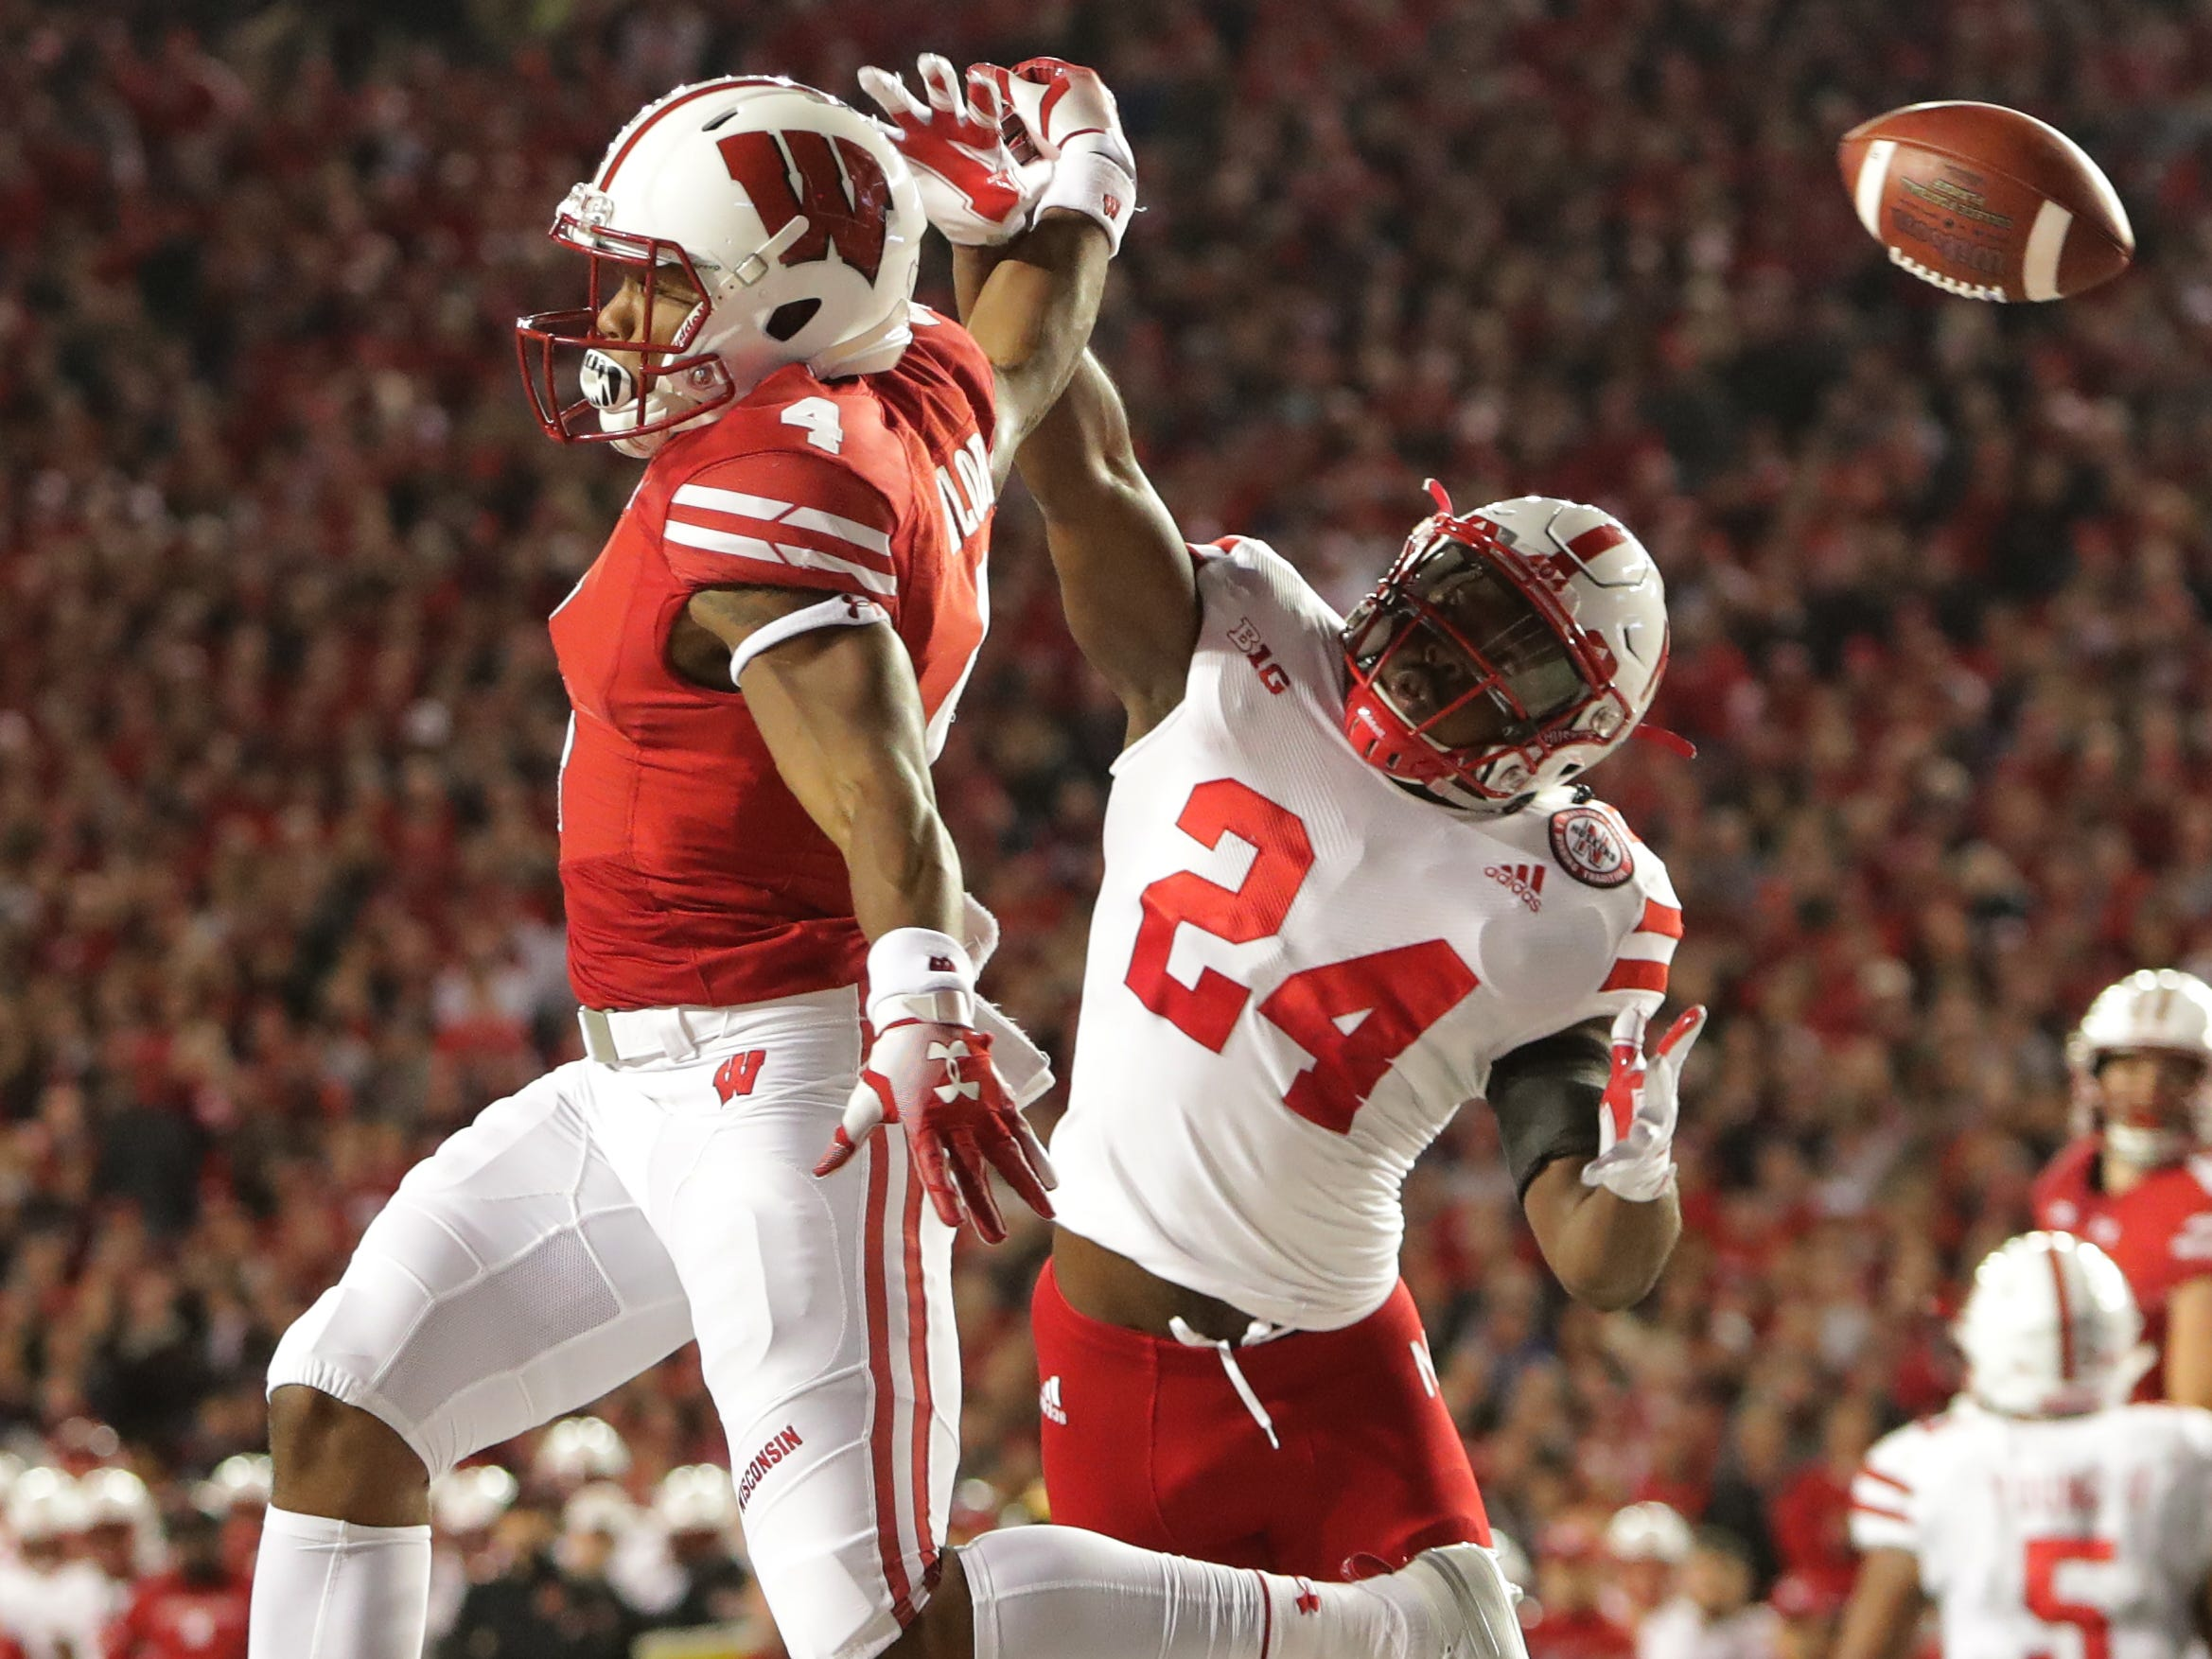 A pass from UW quarterback Alex Hornibrook sails well behind A.j. Taylor in the end zone on third down, forcing the Badgers to settle for a field goal during the second quarter against Nebraska on Saturday night.